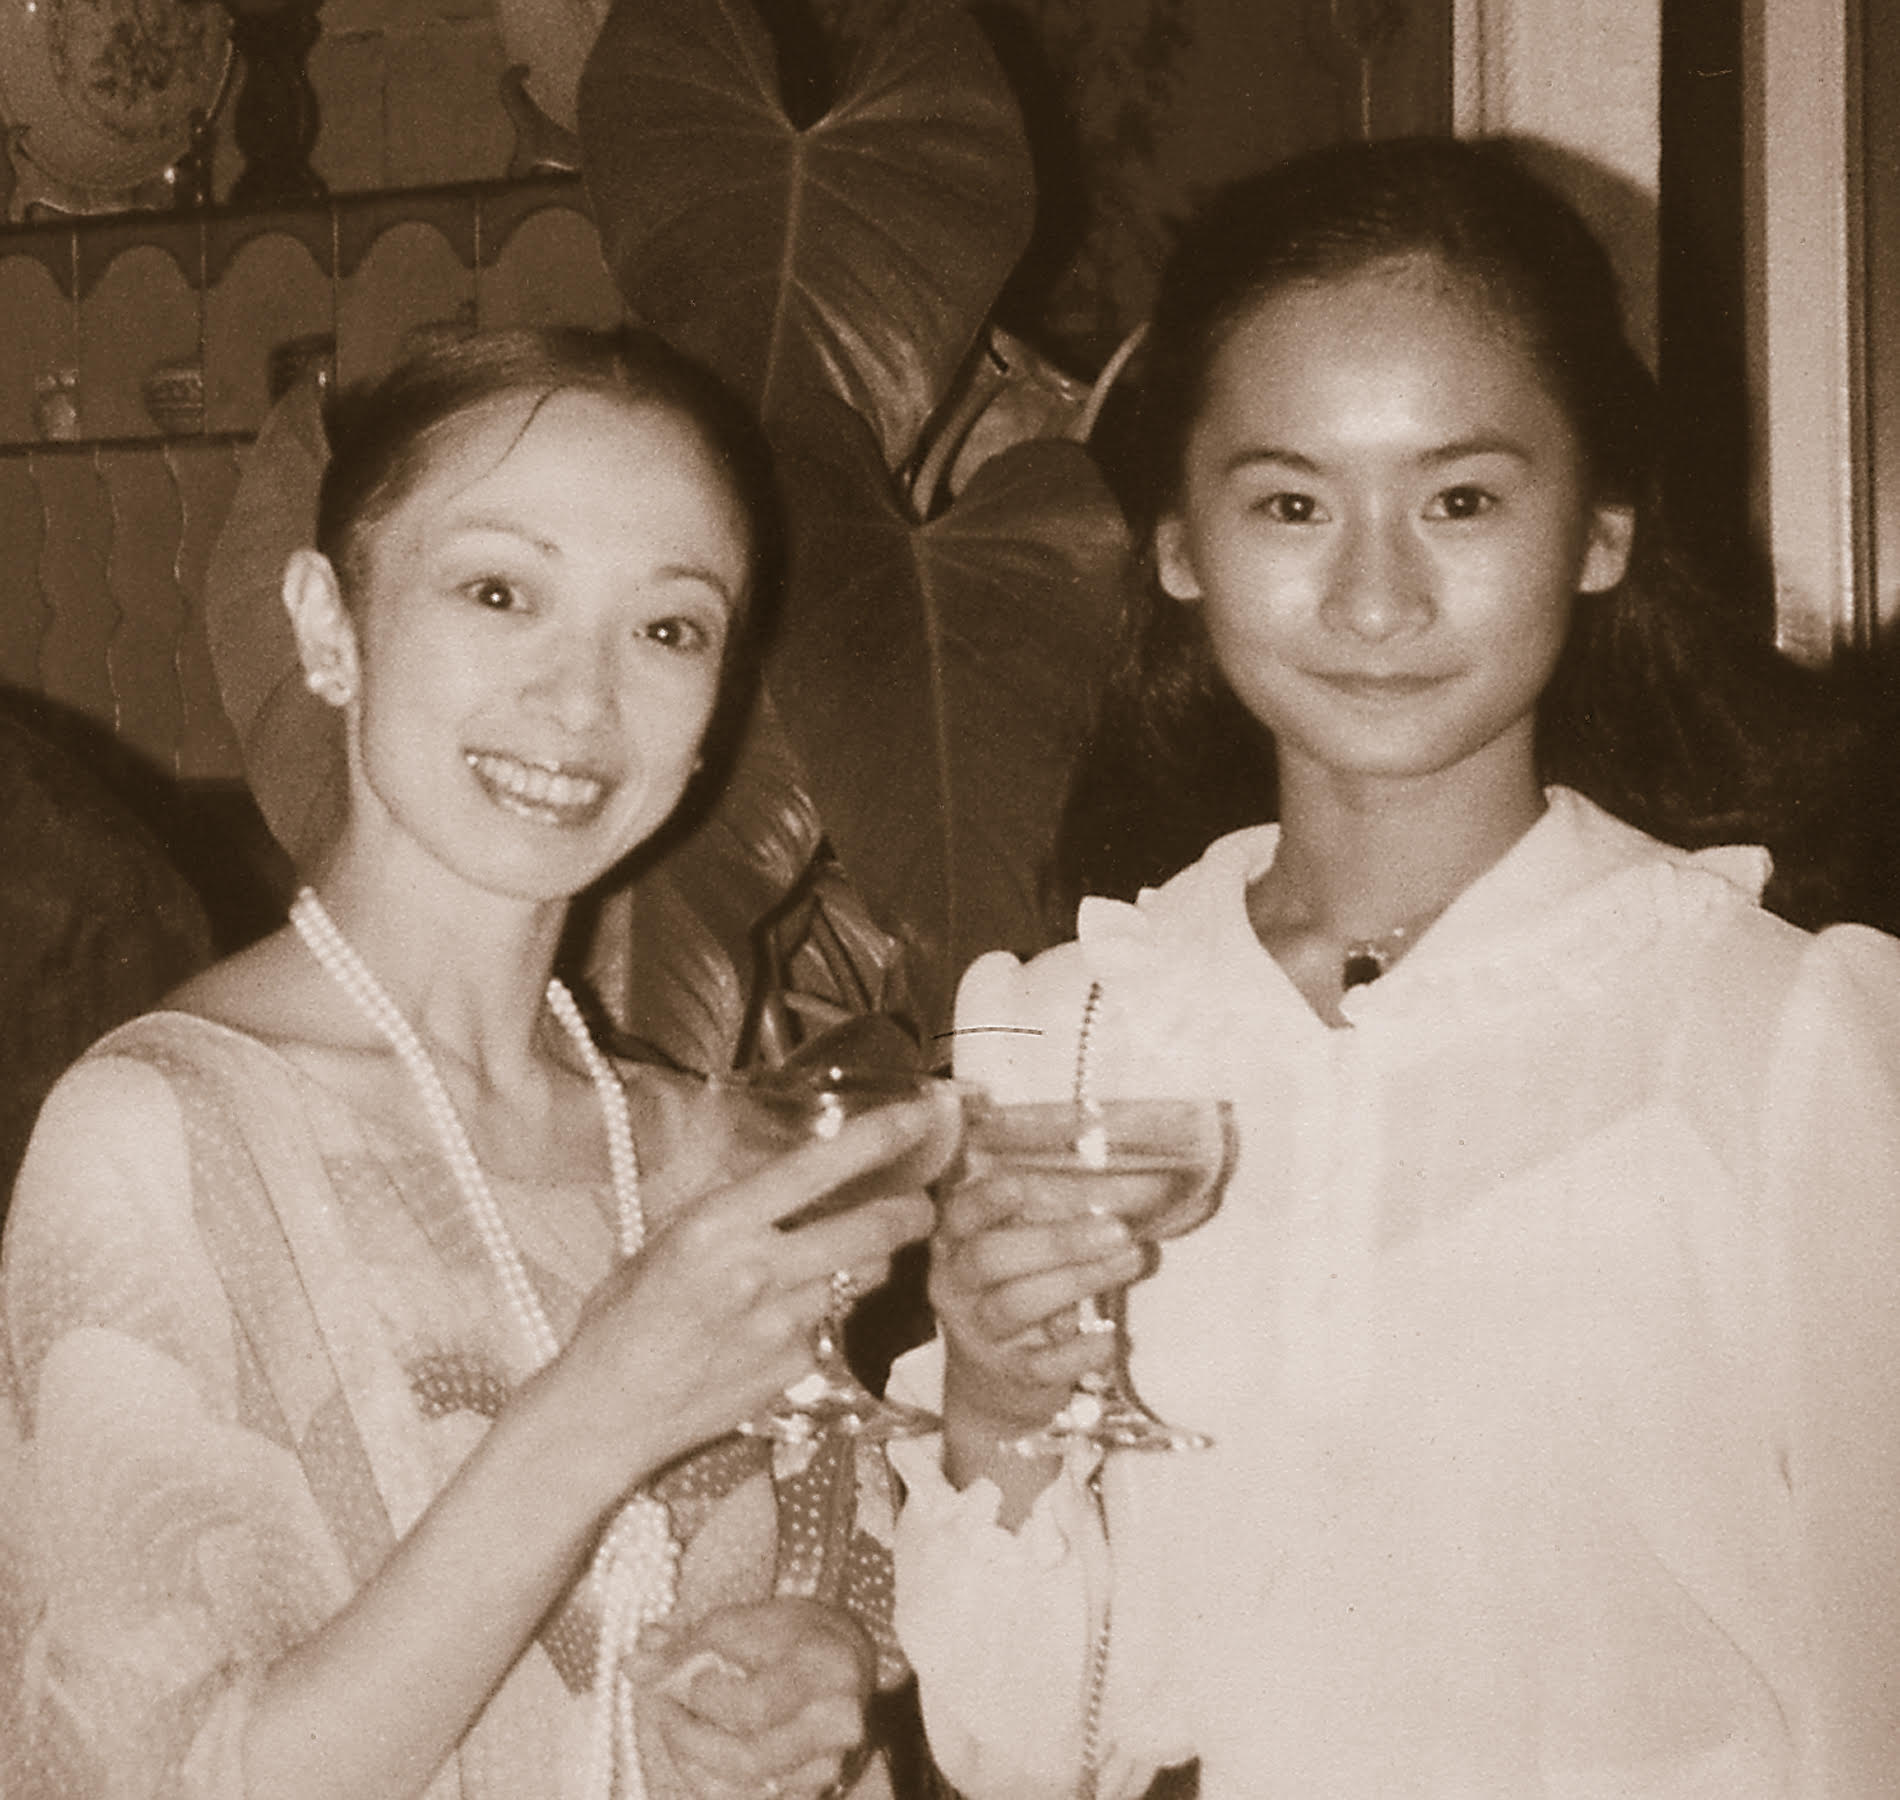 Watching Japanese prima ballerina Yoko Morishita (left) in  Swan Lake  at age 14 inspired Lisa Macuja-Elizalde (right) to pursue ballet as a profession. Photo from  Ballerina of the People